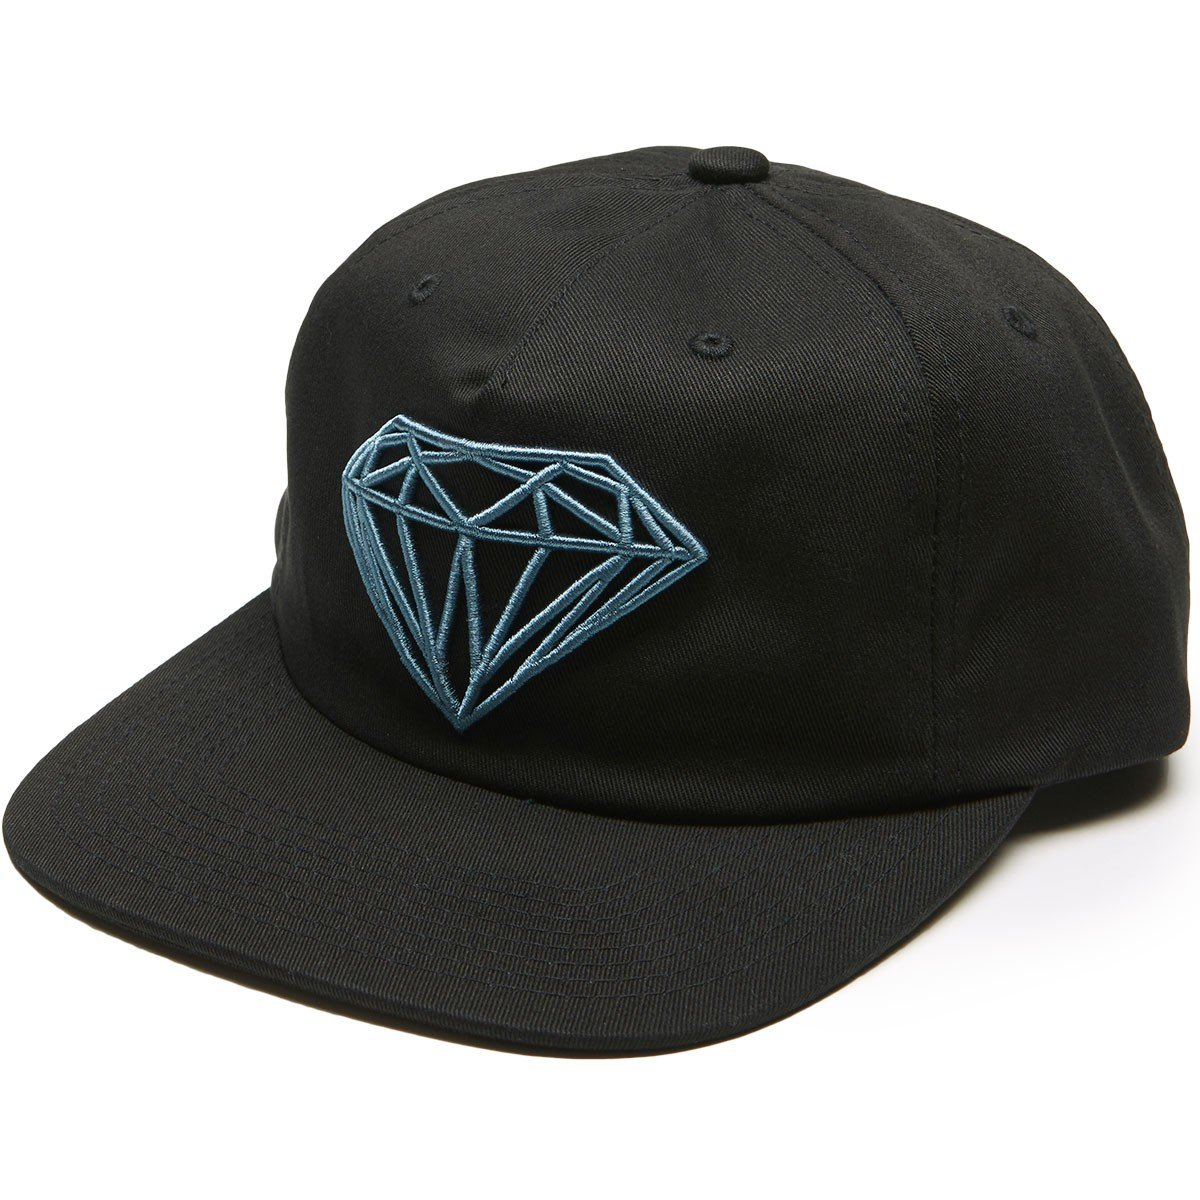 11131241d Amazon.com: Diamond Supply Co. Brilliant Unconstructed Snapback Hat ...